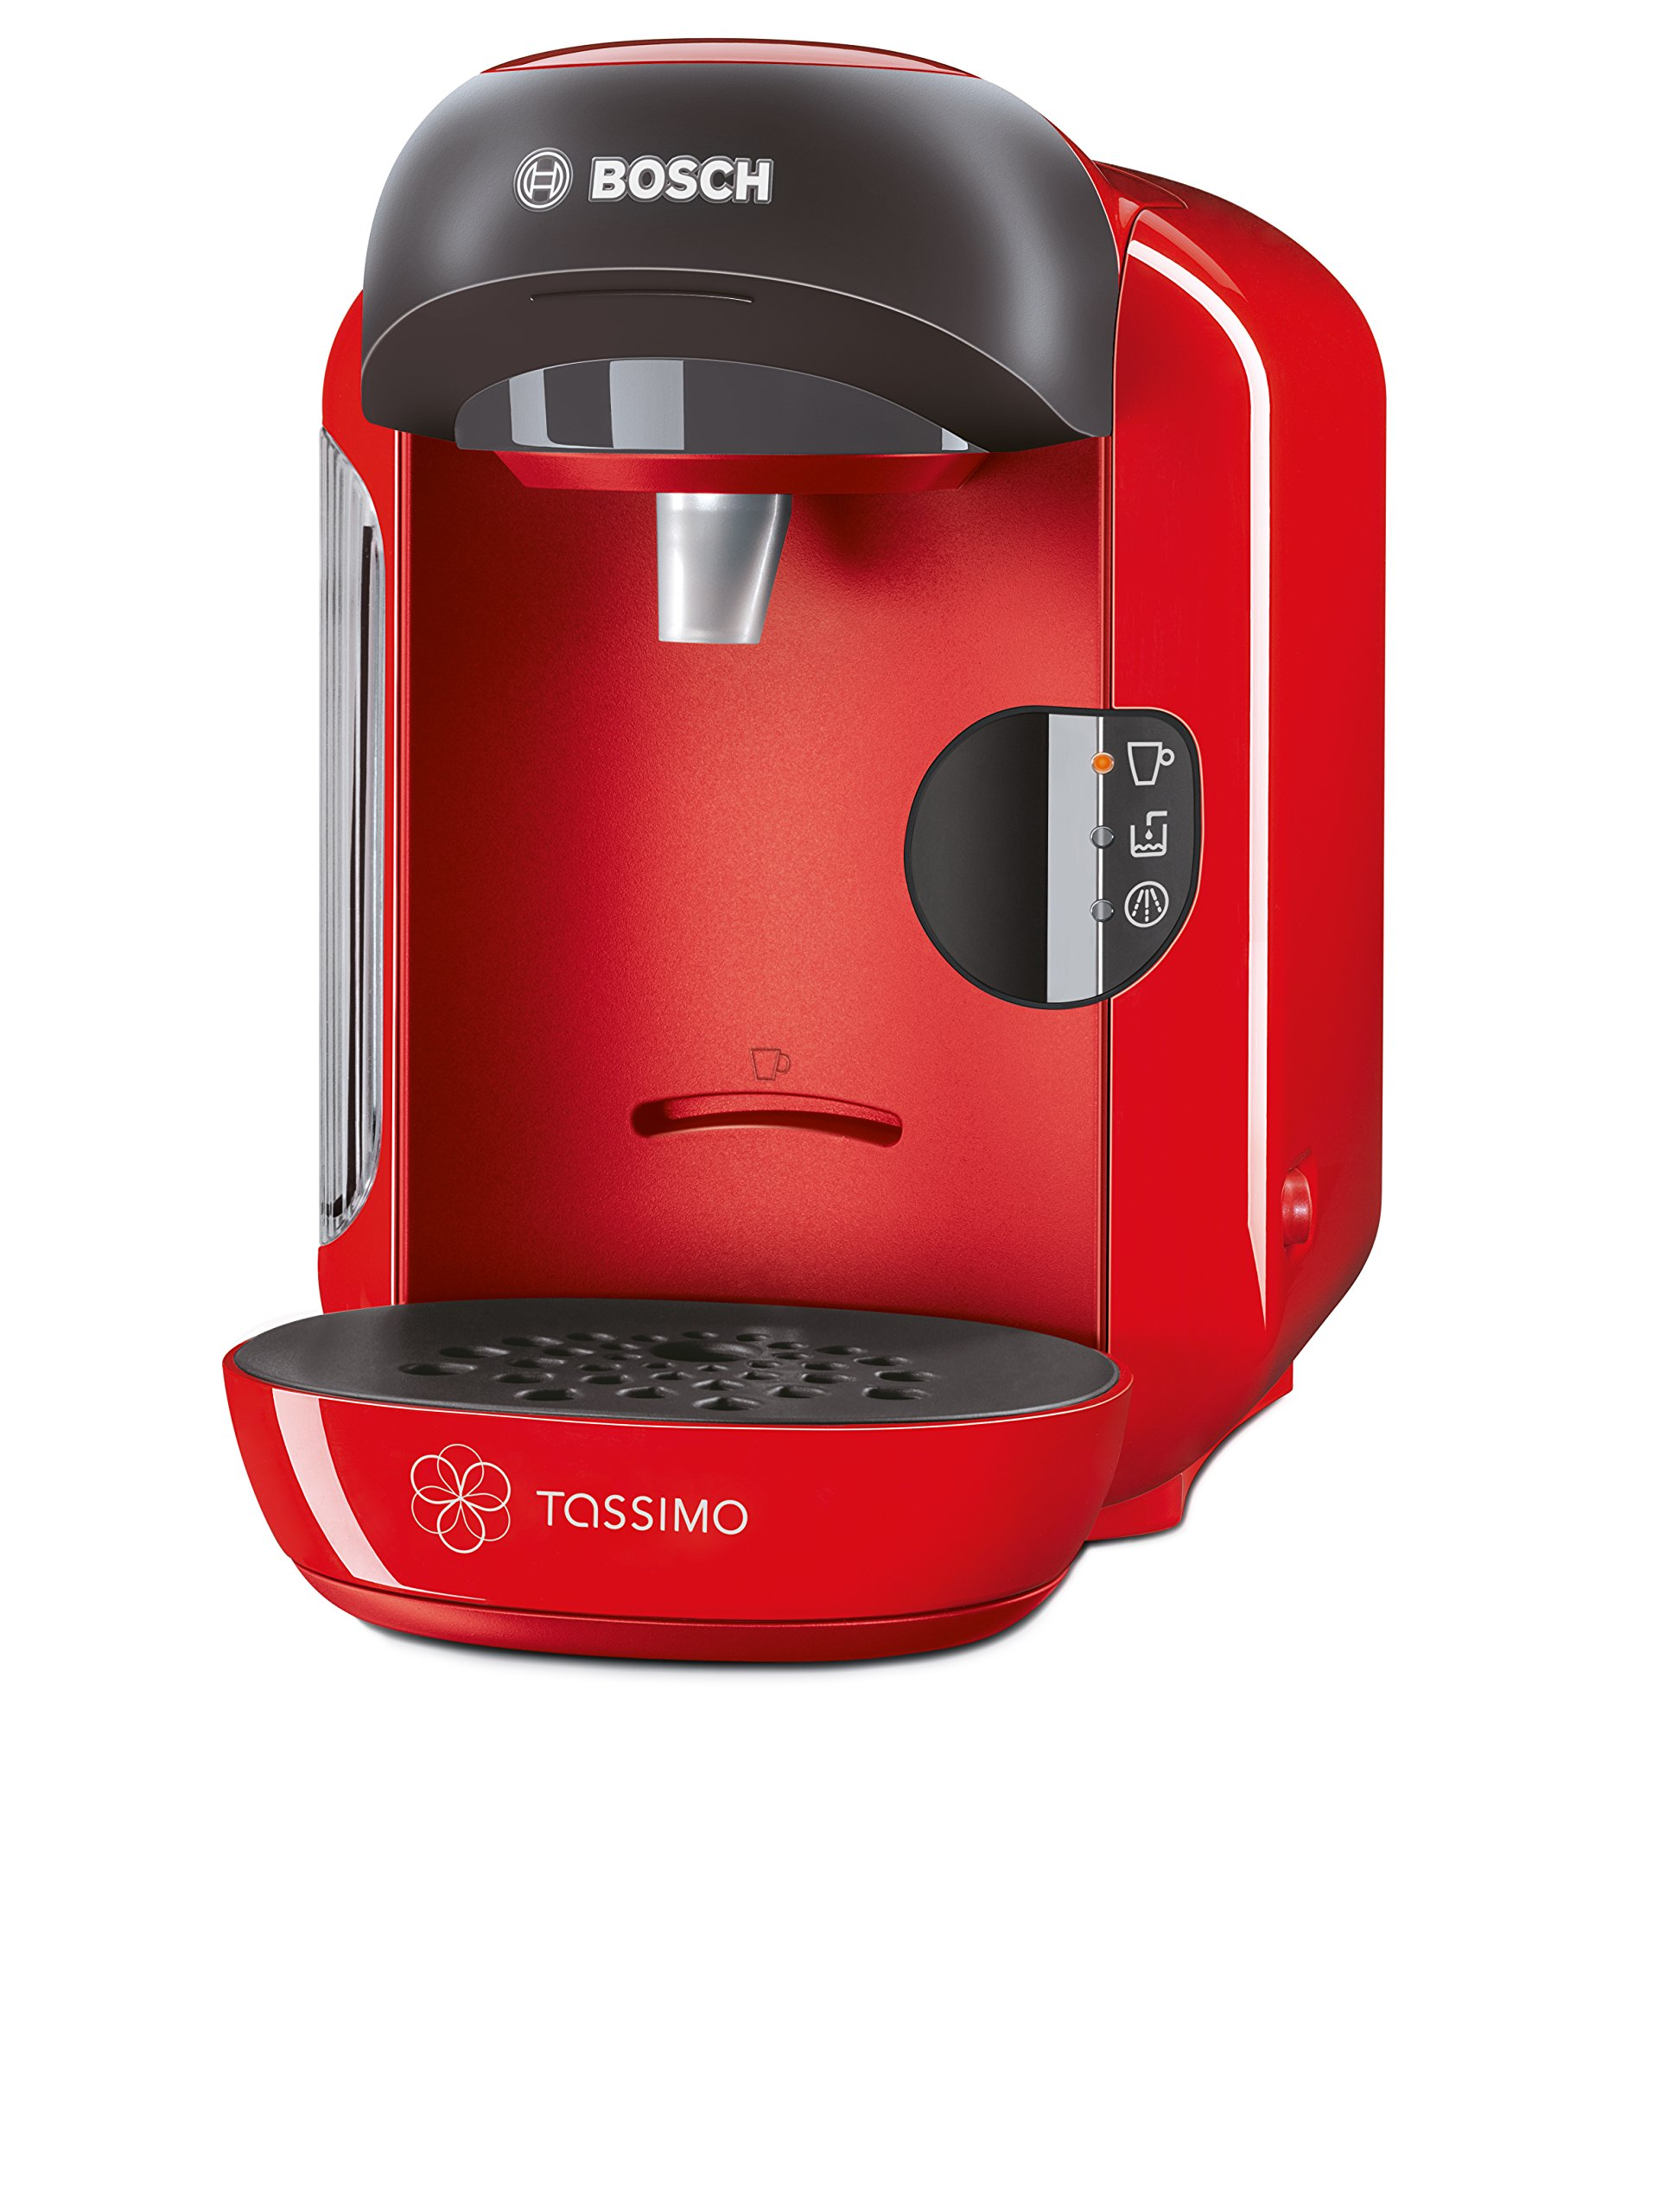 Bosch Tassimo TAS1253GB Vivy Hot Drinks and Coffee Machine 1300 W - Red Red